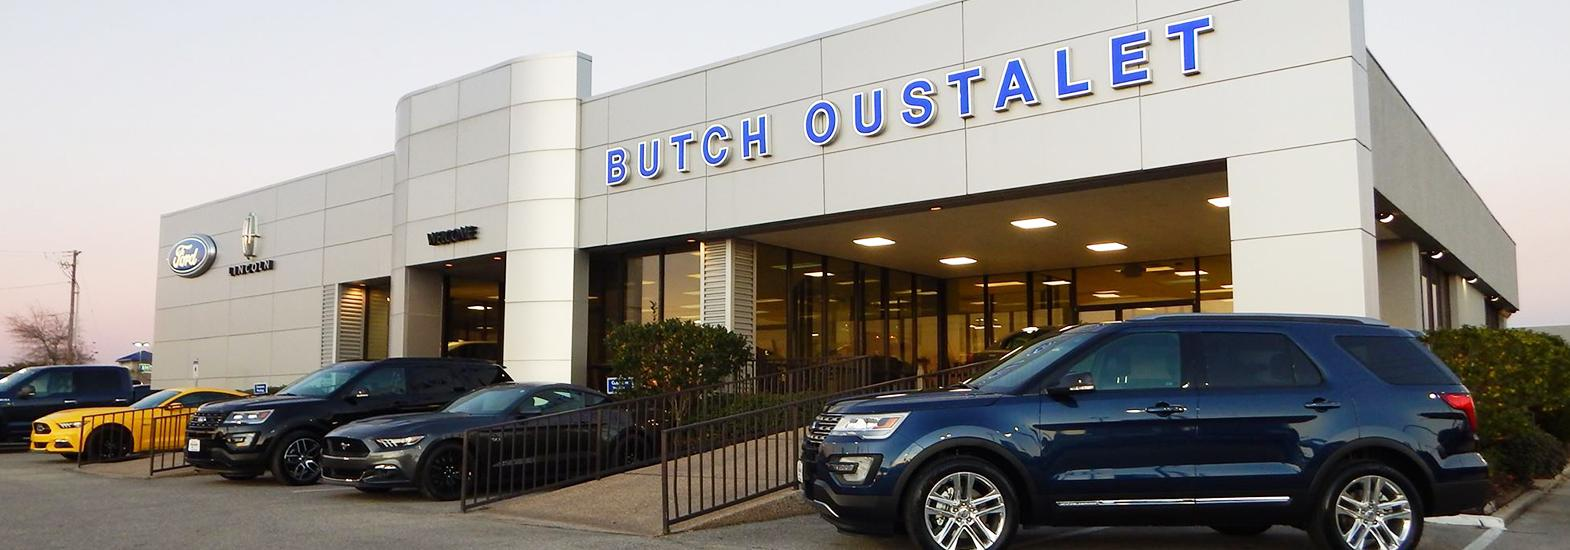 Butch Oustalet Ford >> Butch Oustalet Ford Makes a Smooth Transition to the Ford ...